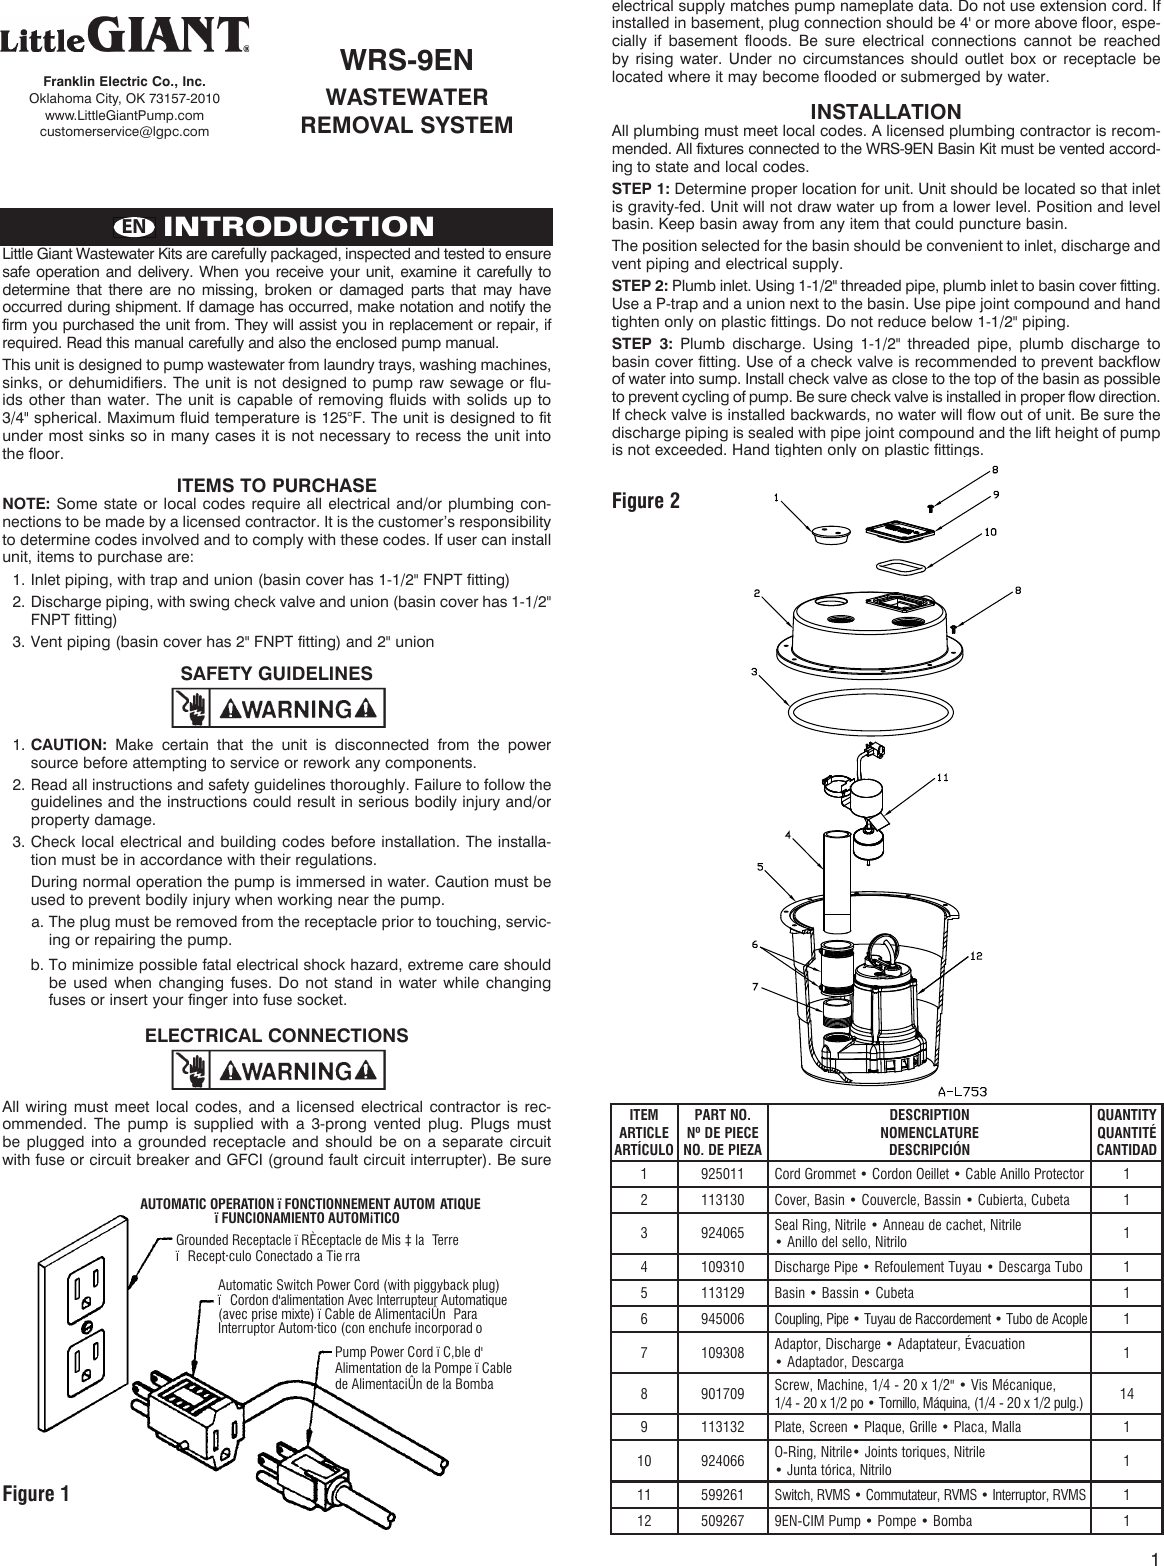 Little Giant Power Cord Wiring Diagram Trusted Diagrams Franklin Electric 548279 3 Wrs 9en Installation Manual Valentine One